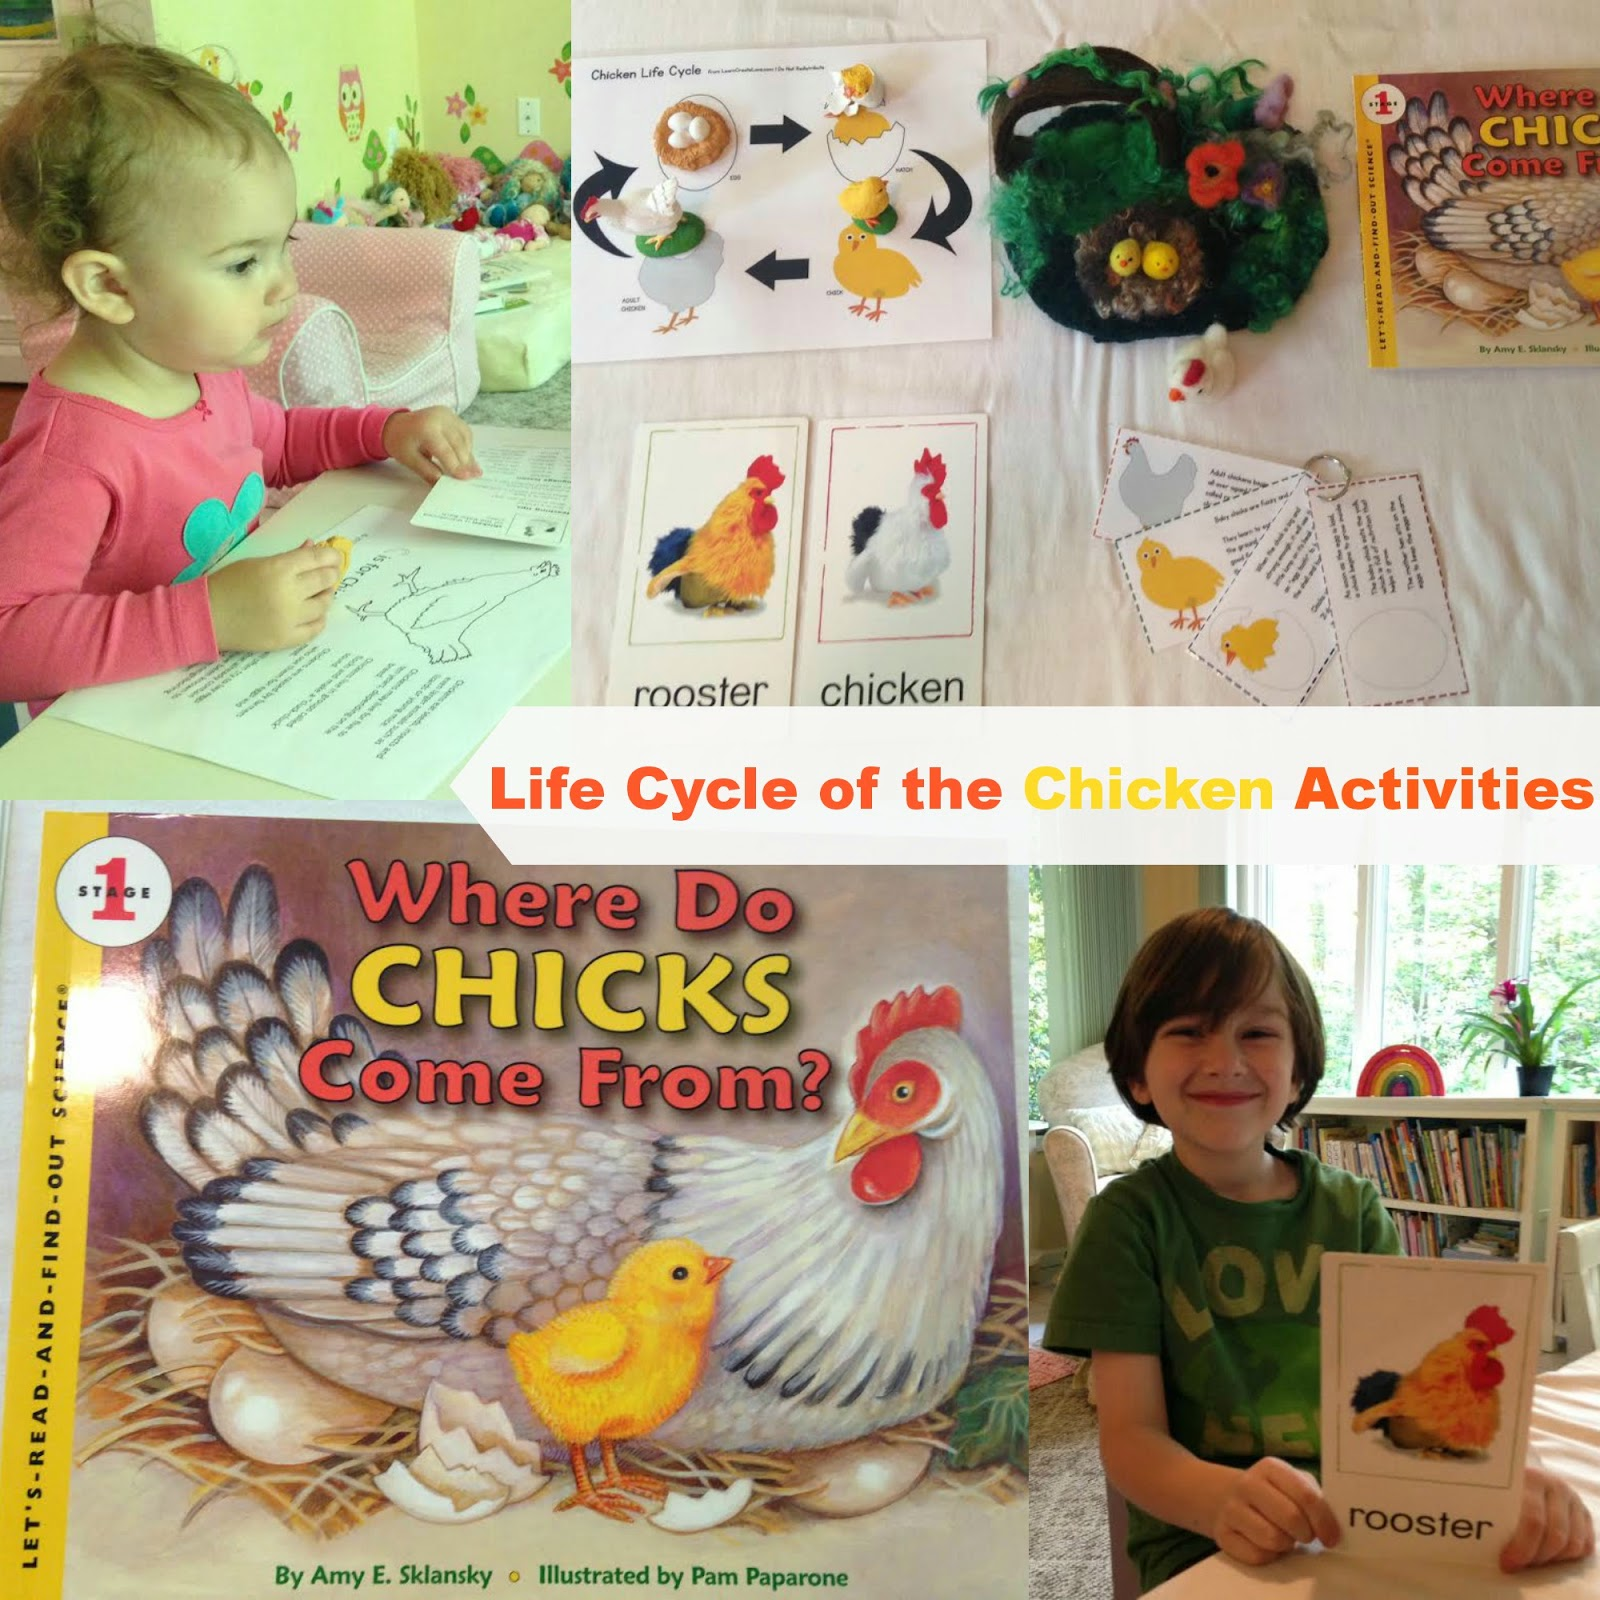 life cycle of a chicken, Science, homeschooling, spring activities, unit study, handmade , Montessori learning, Waldorf, and more www.naturalbeachliving.com